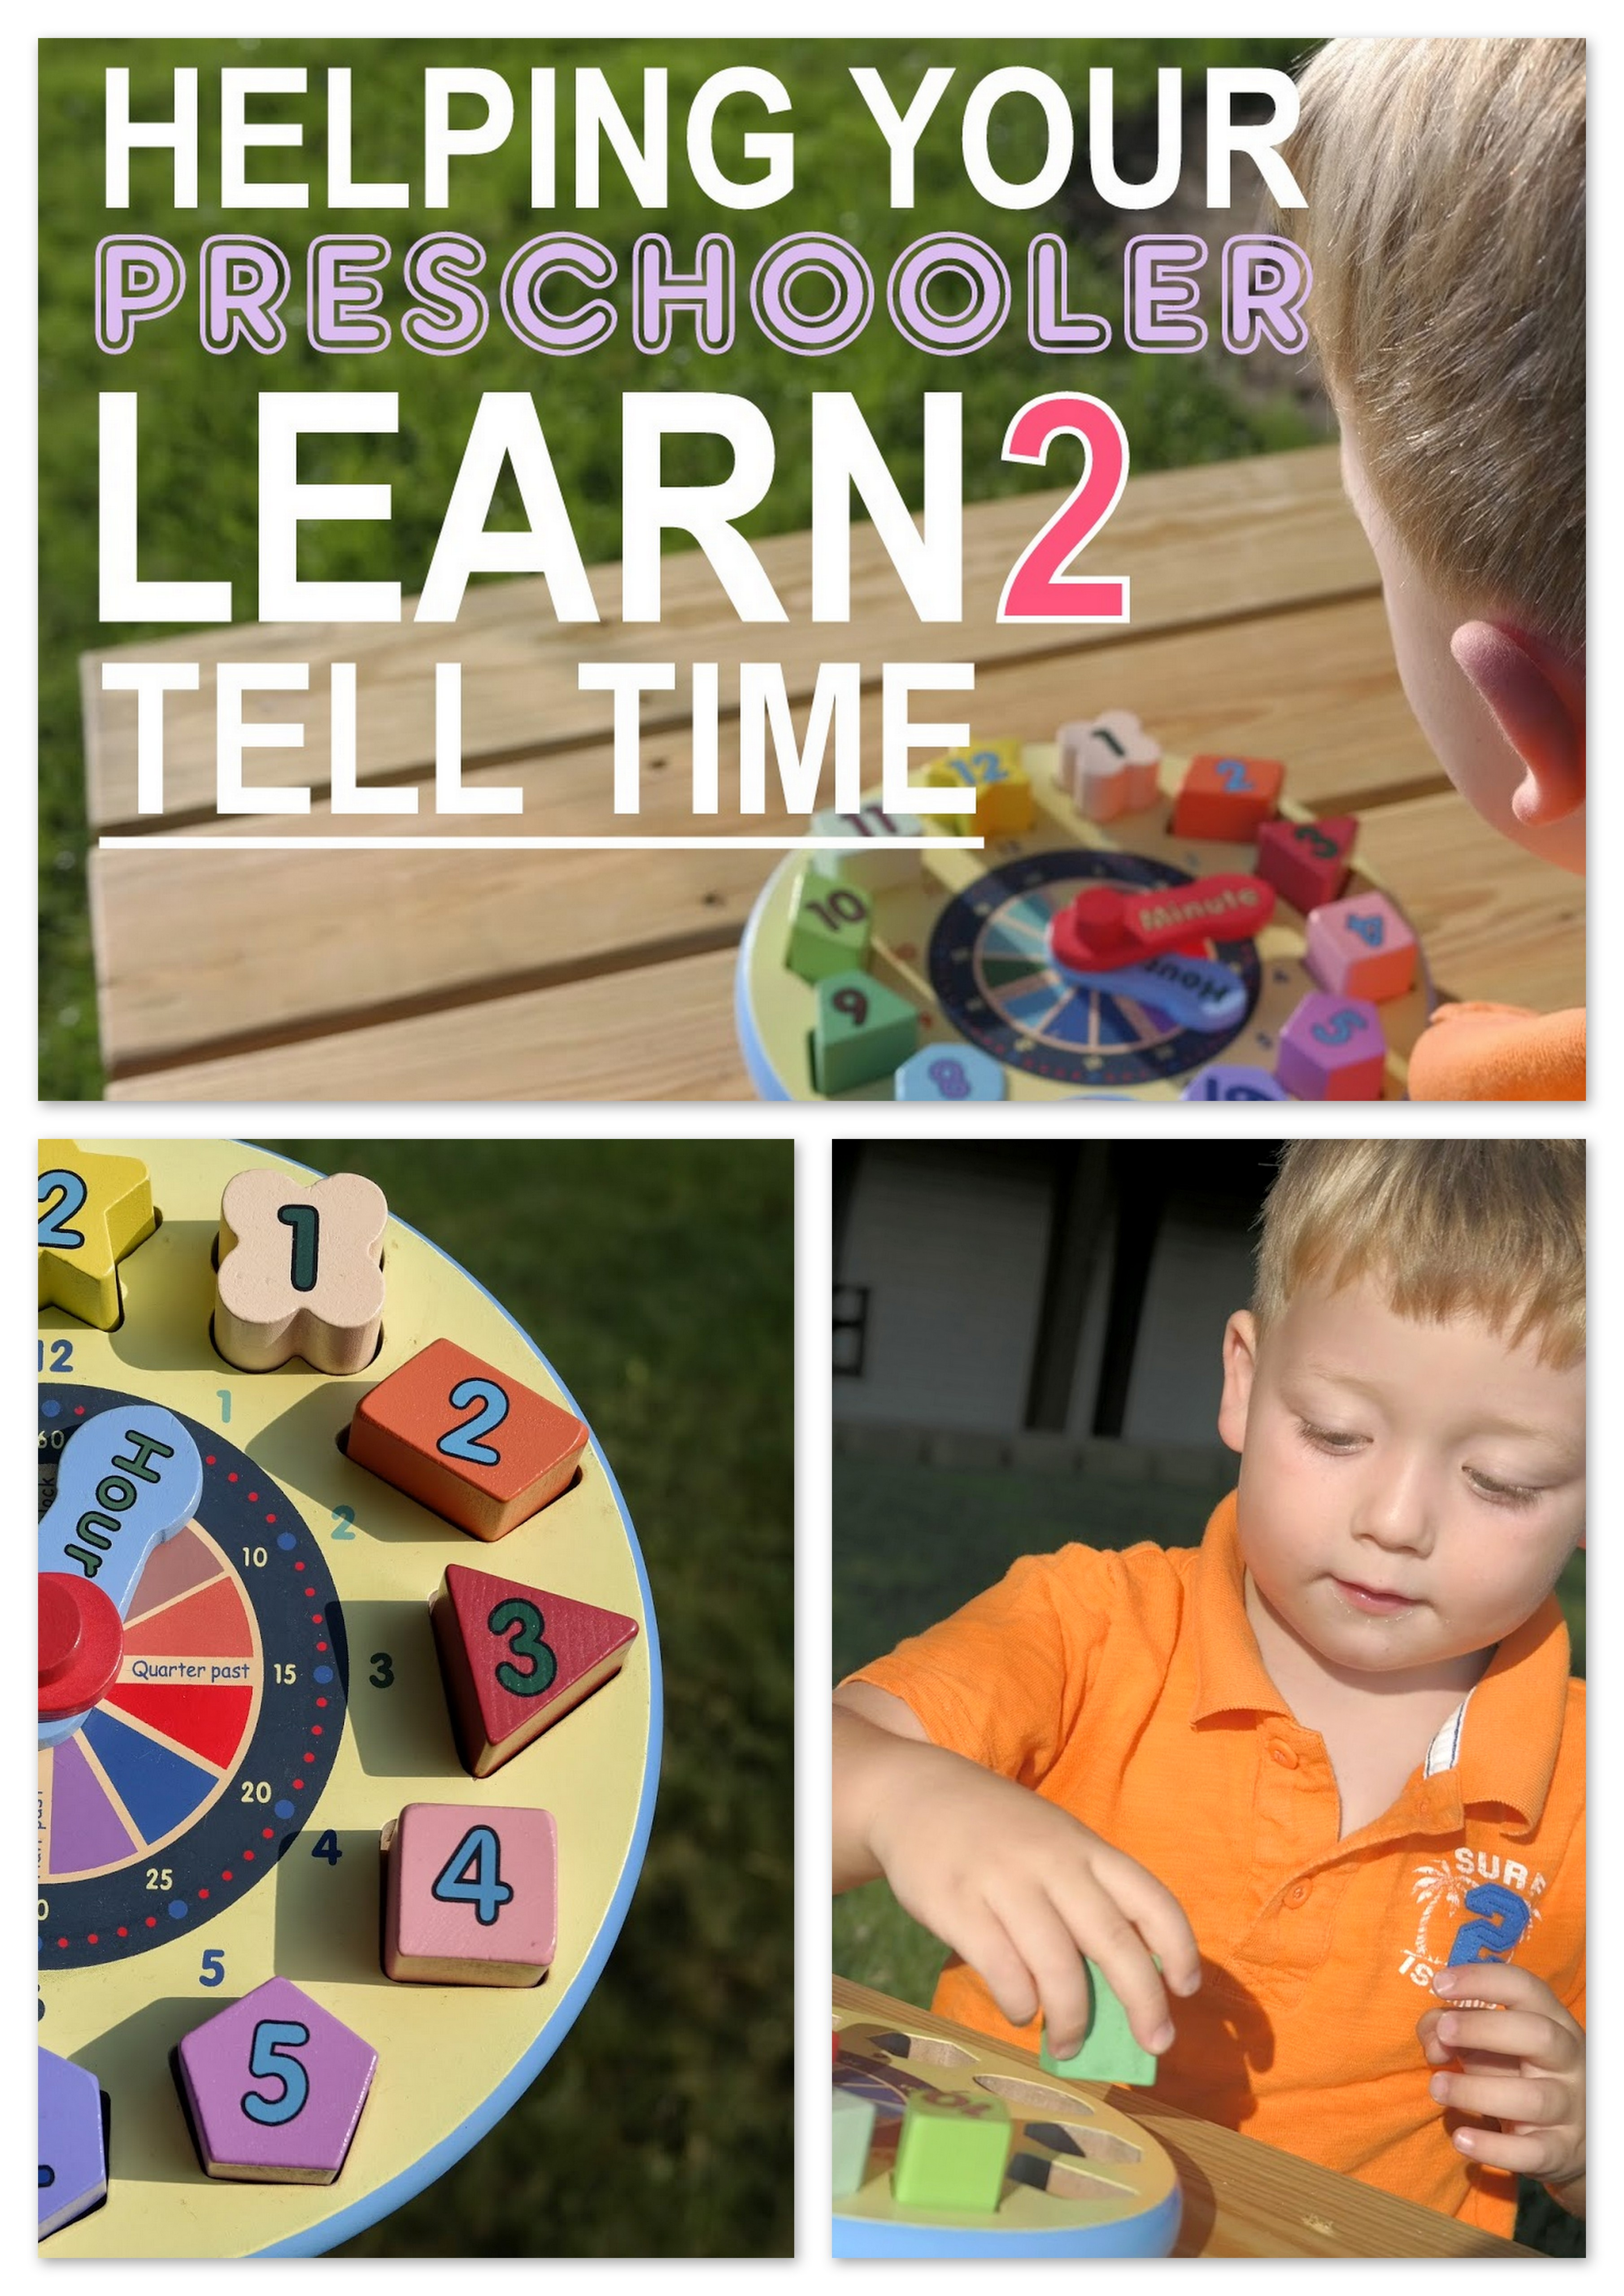 Helping your Preschooler Tell Time